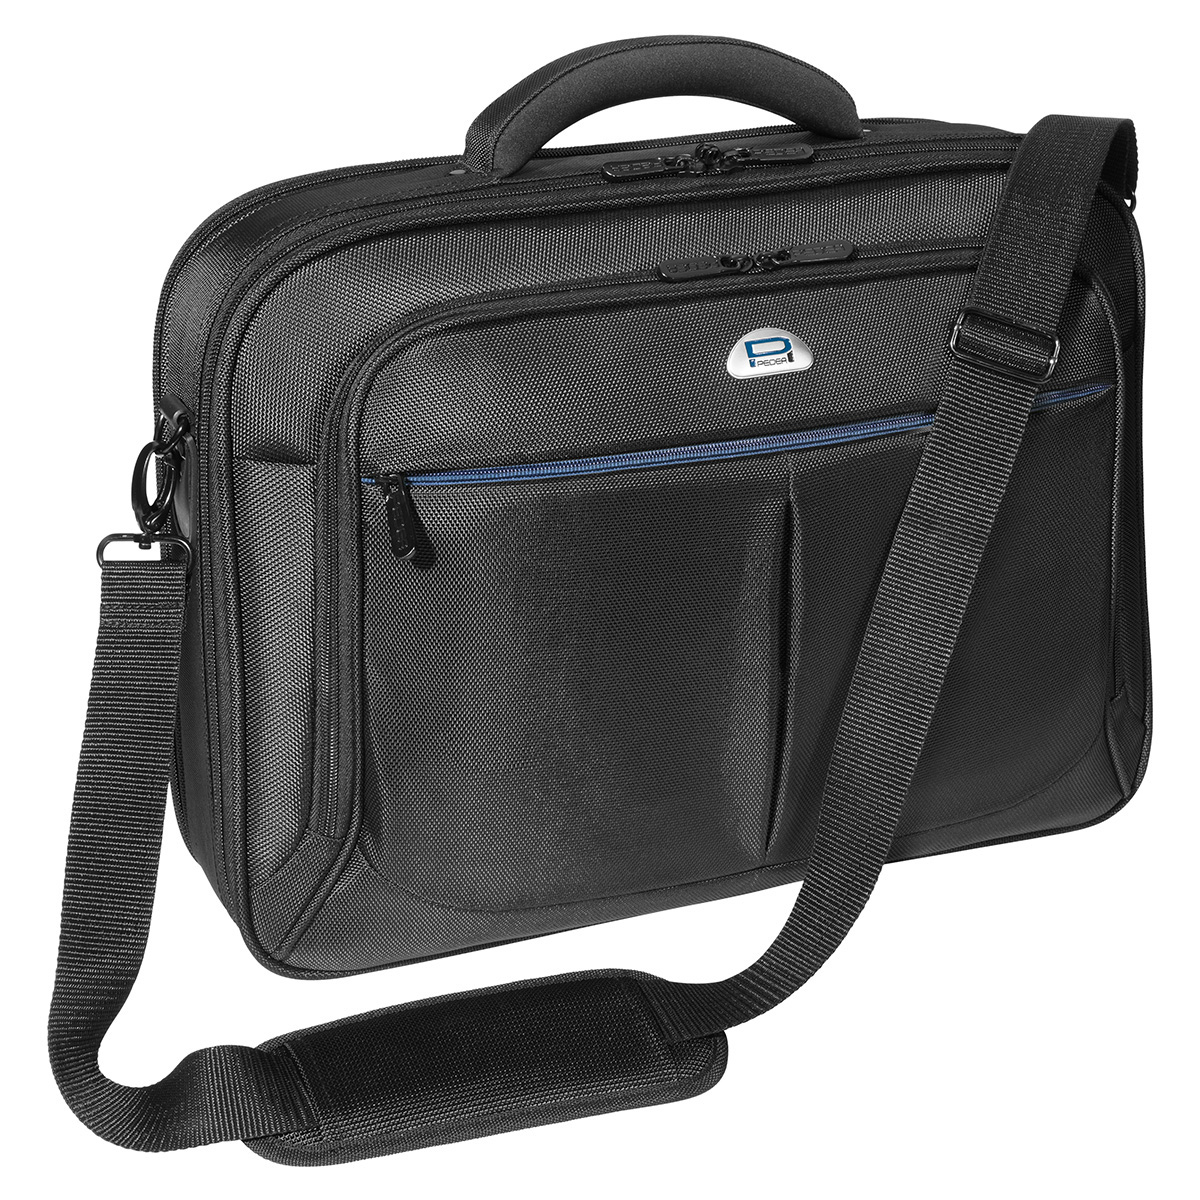 PEDEA Premium Clamshell Laptop Bag Case 17.3 inch